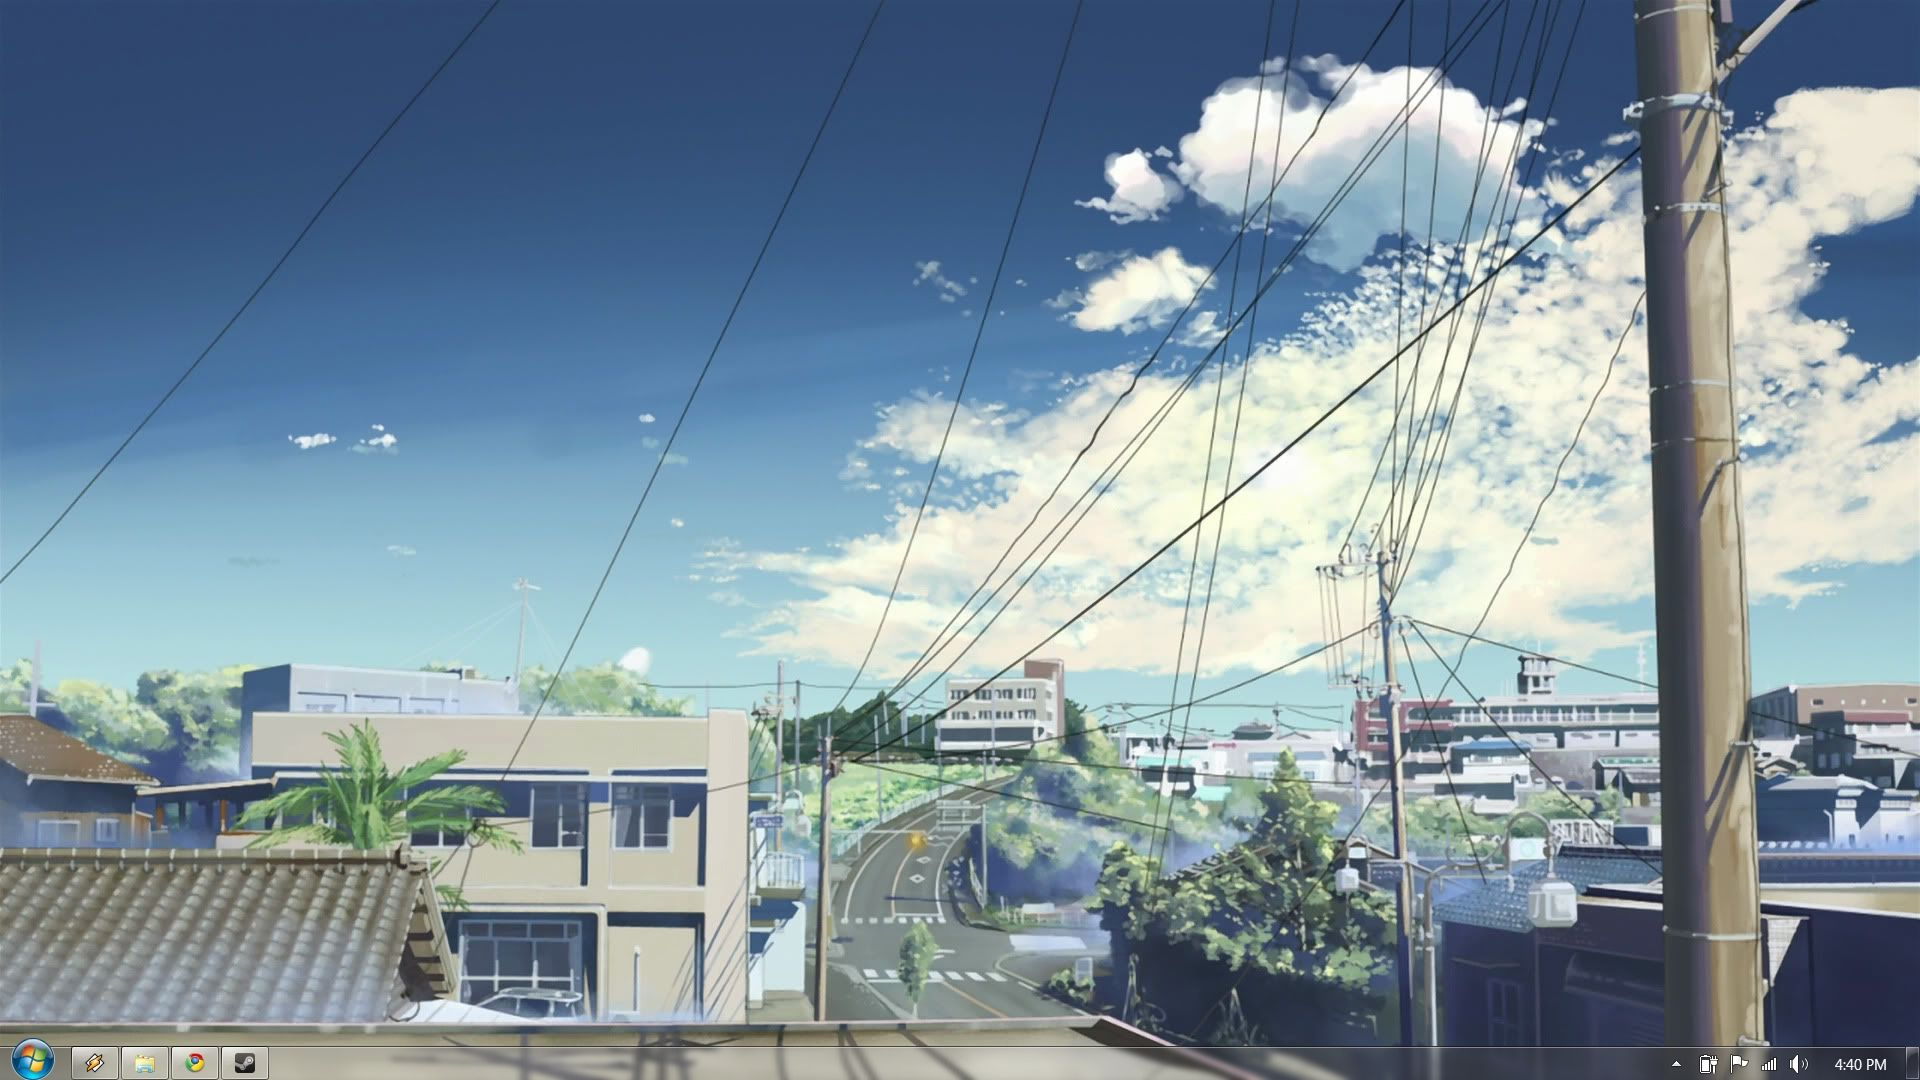 5 centimeters per second wallpaper Google Search 애니메이션